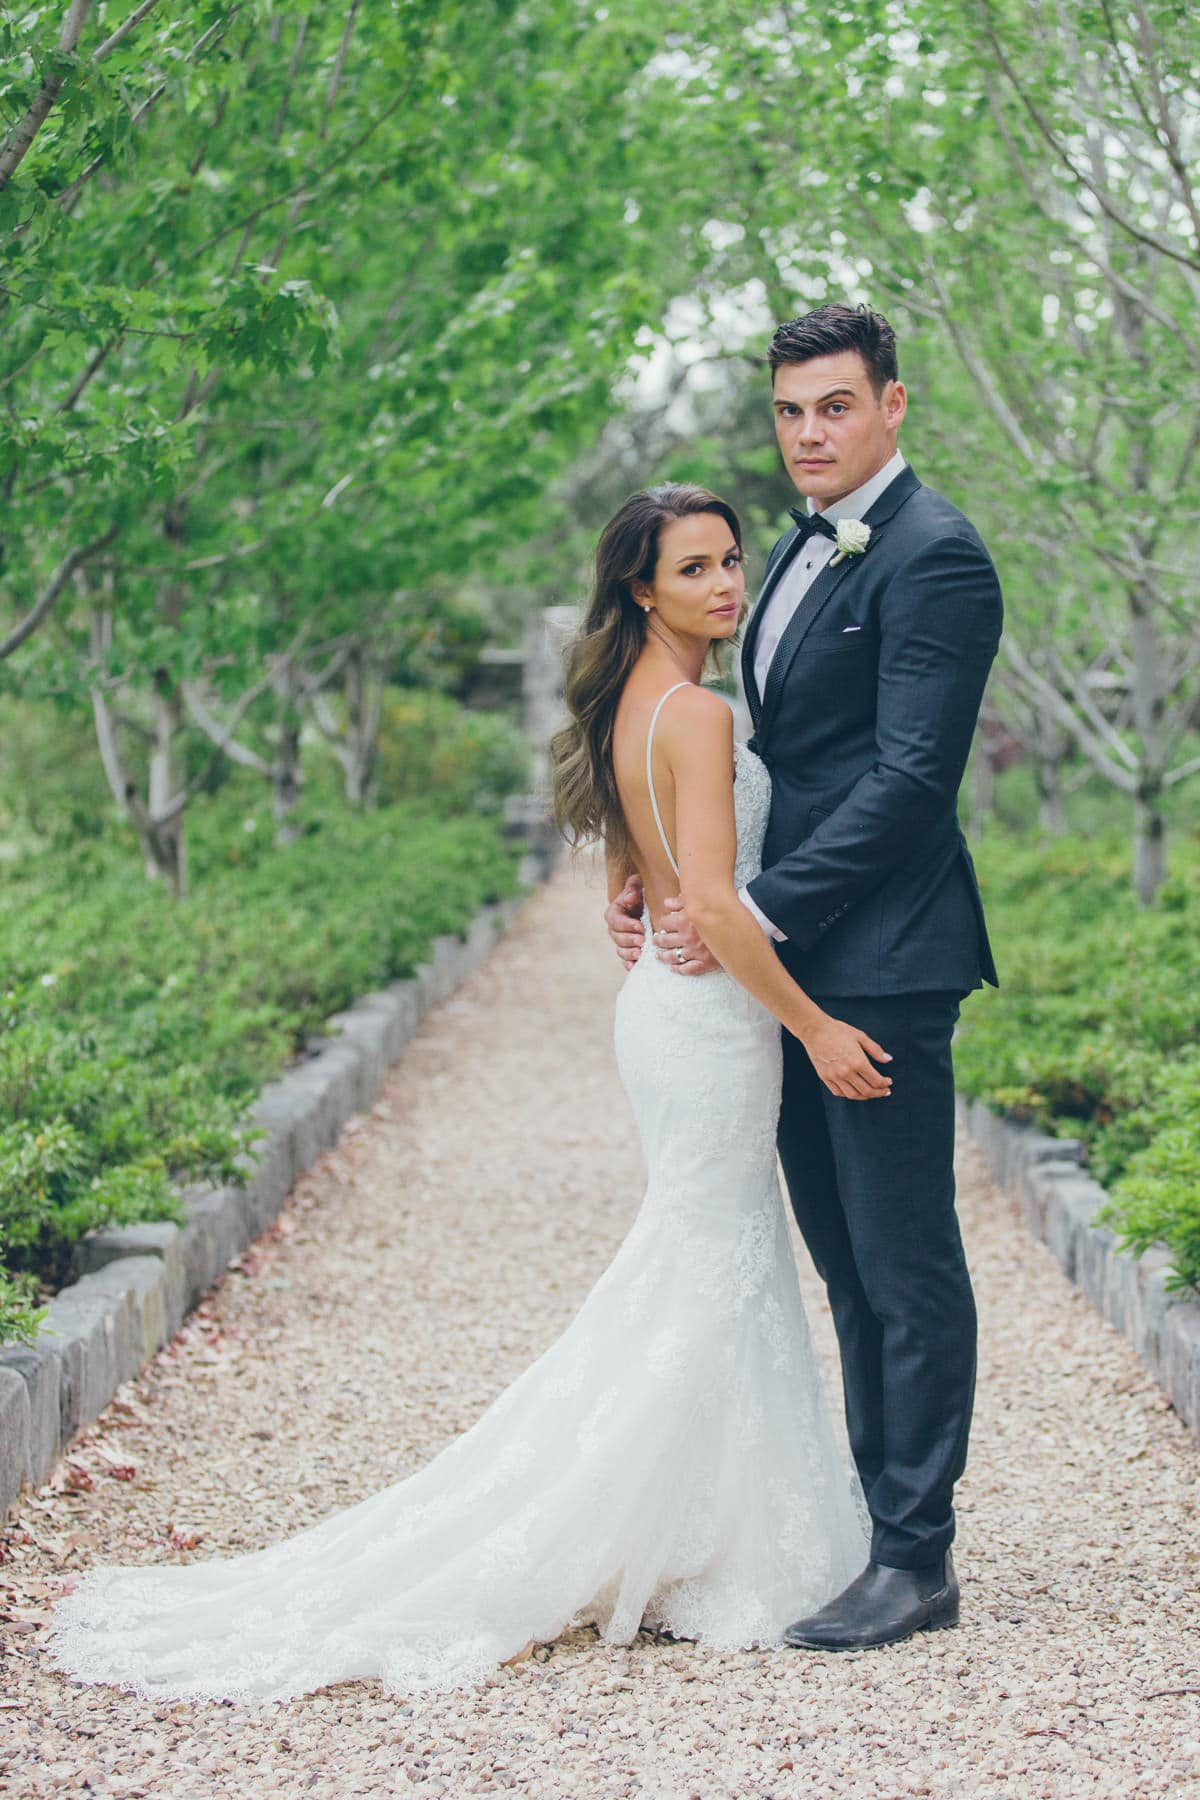 nathan grima and jacinta wedding